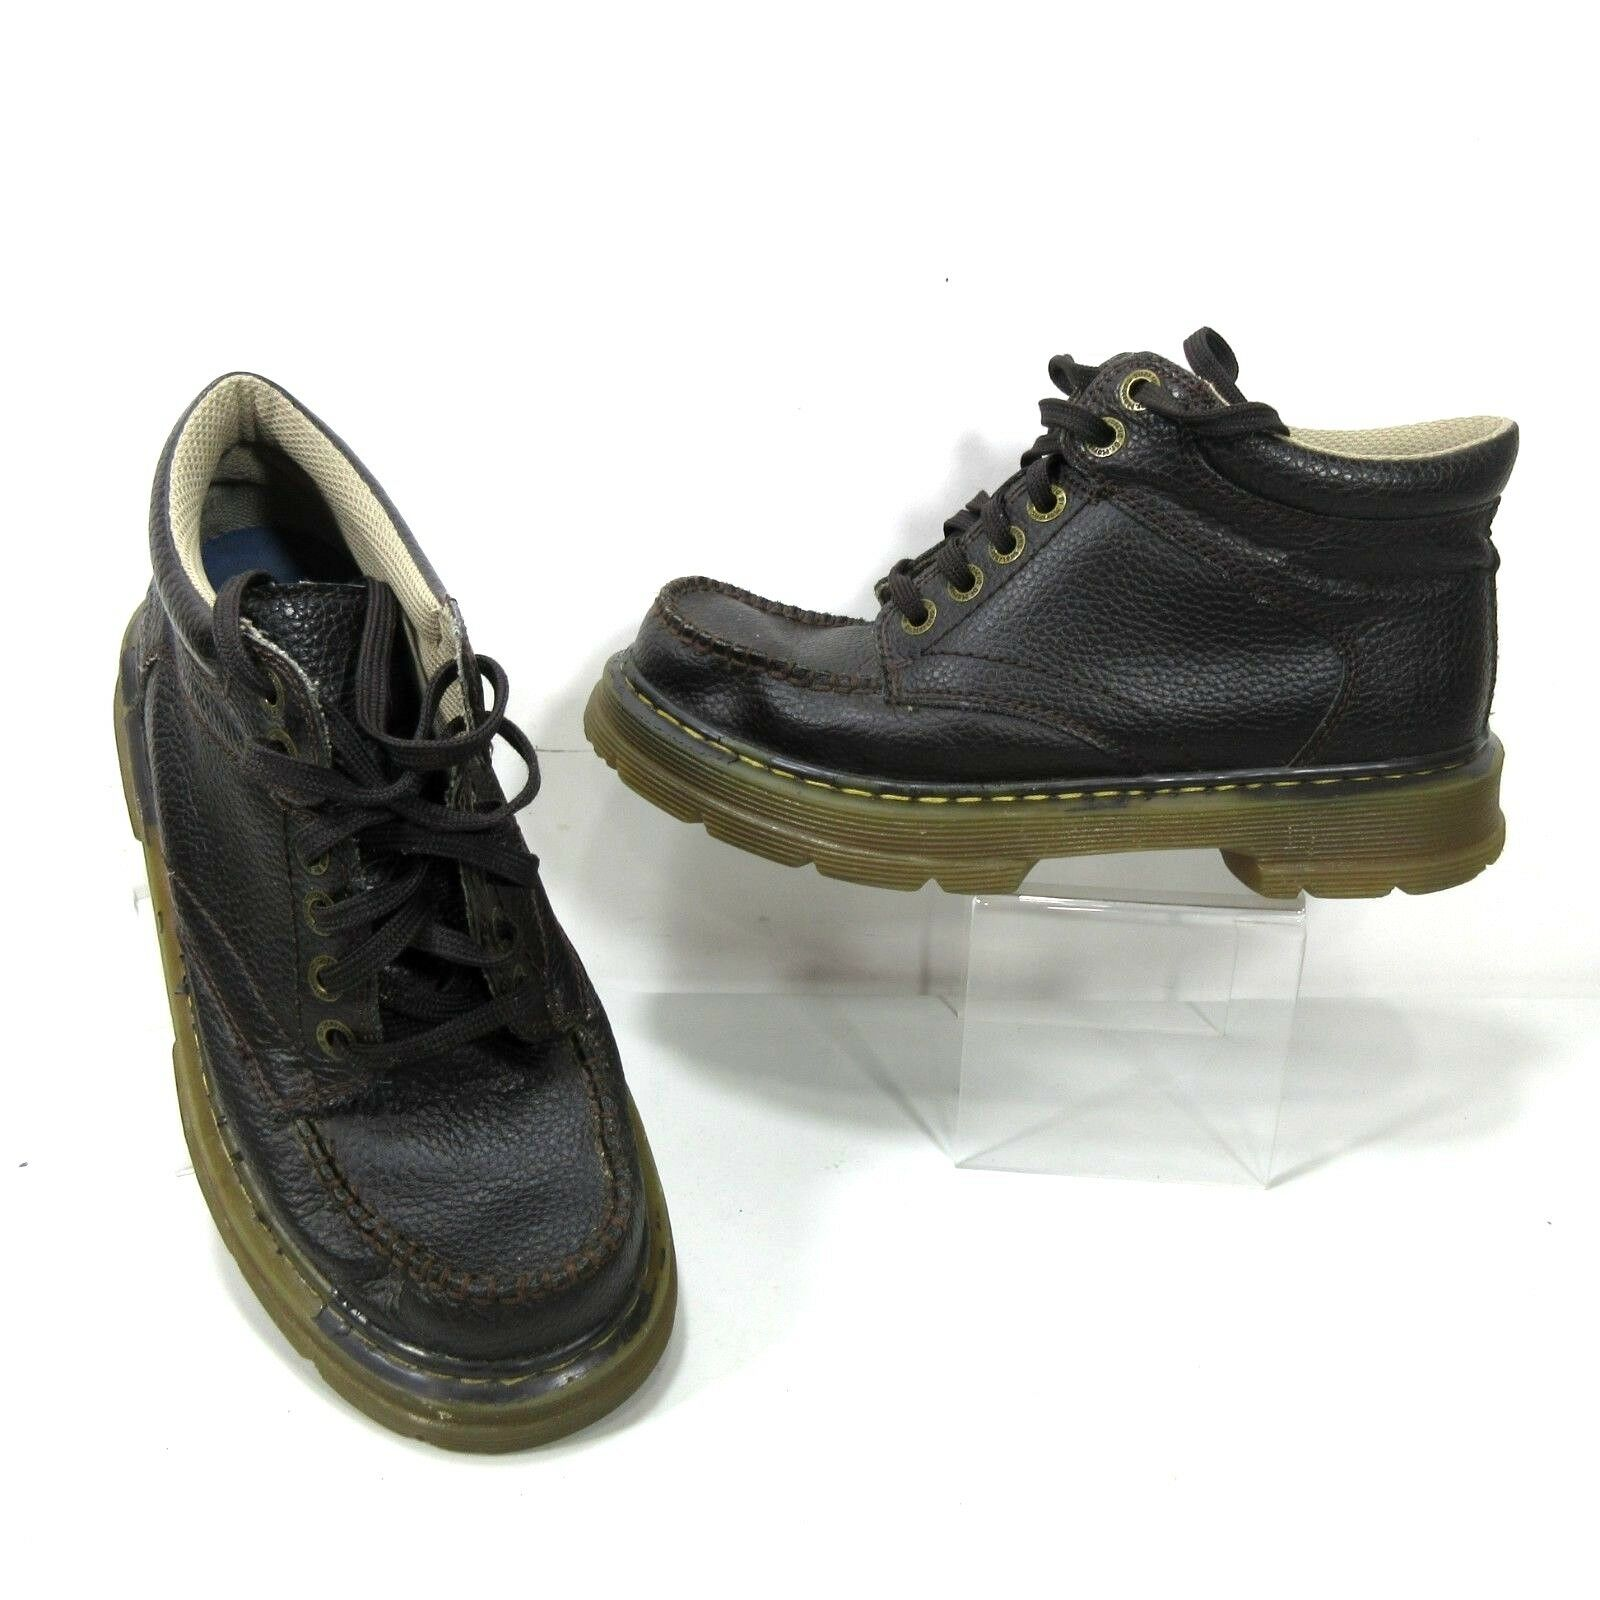 Dr. MARTENS GARVEY Men's US 9 Brown Pebbled Leather Casual Moc Toe Chukka Boots